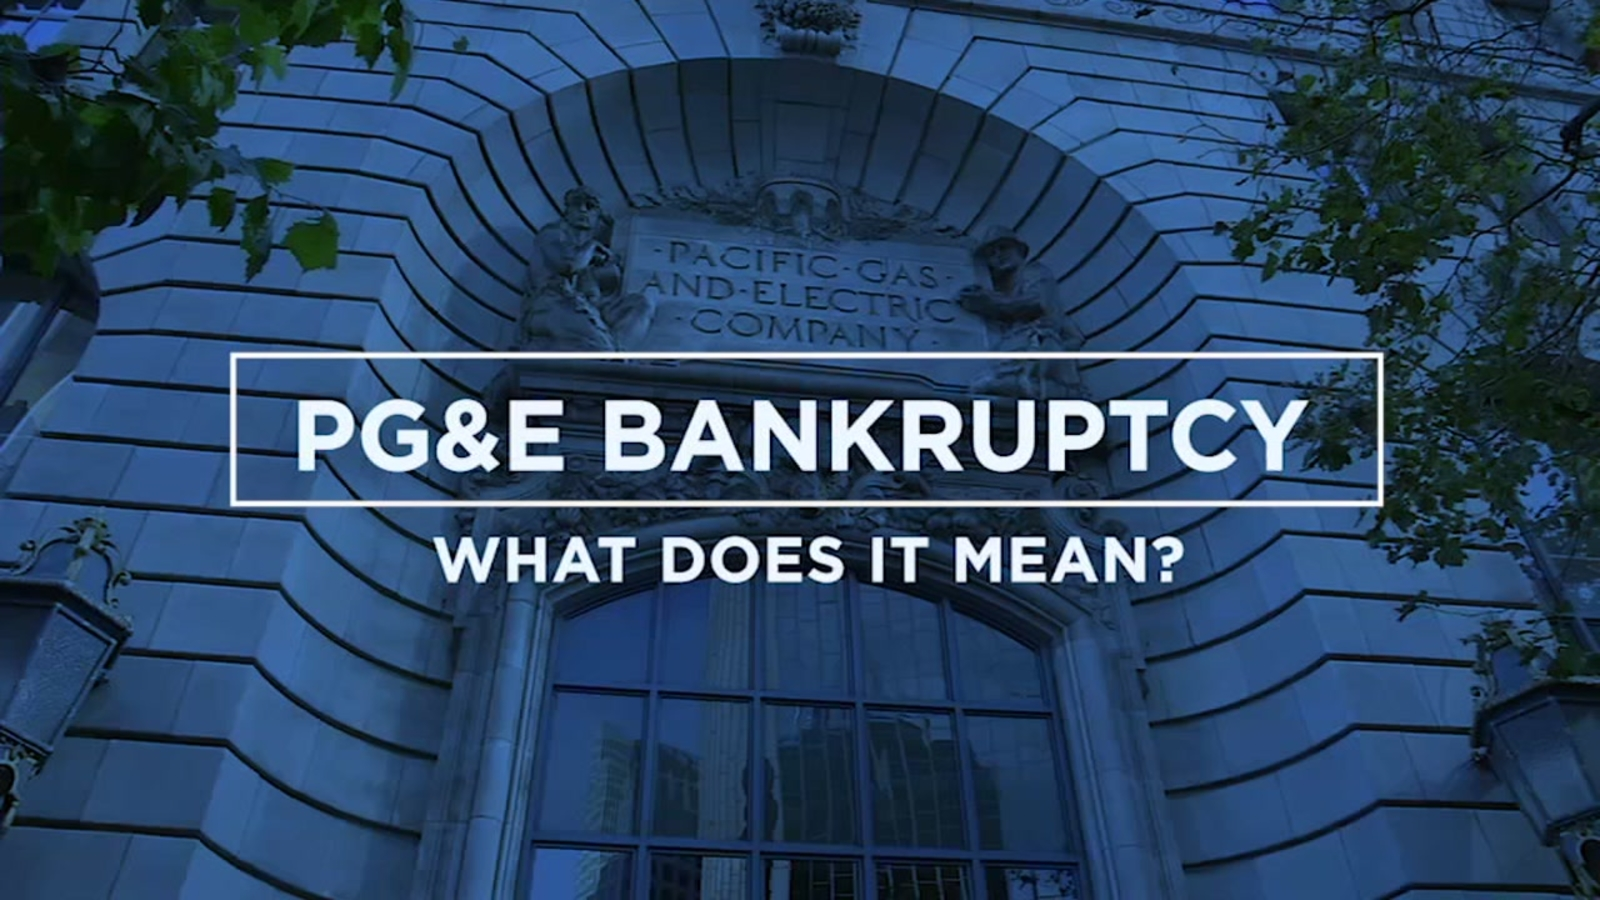 PG&E Bankruptcy: Here's how it'll affect customers, employees, shareholders